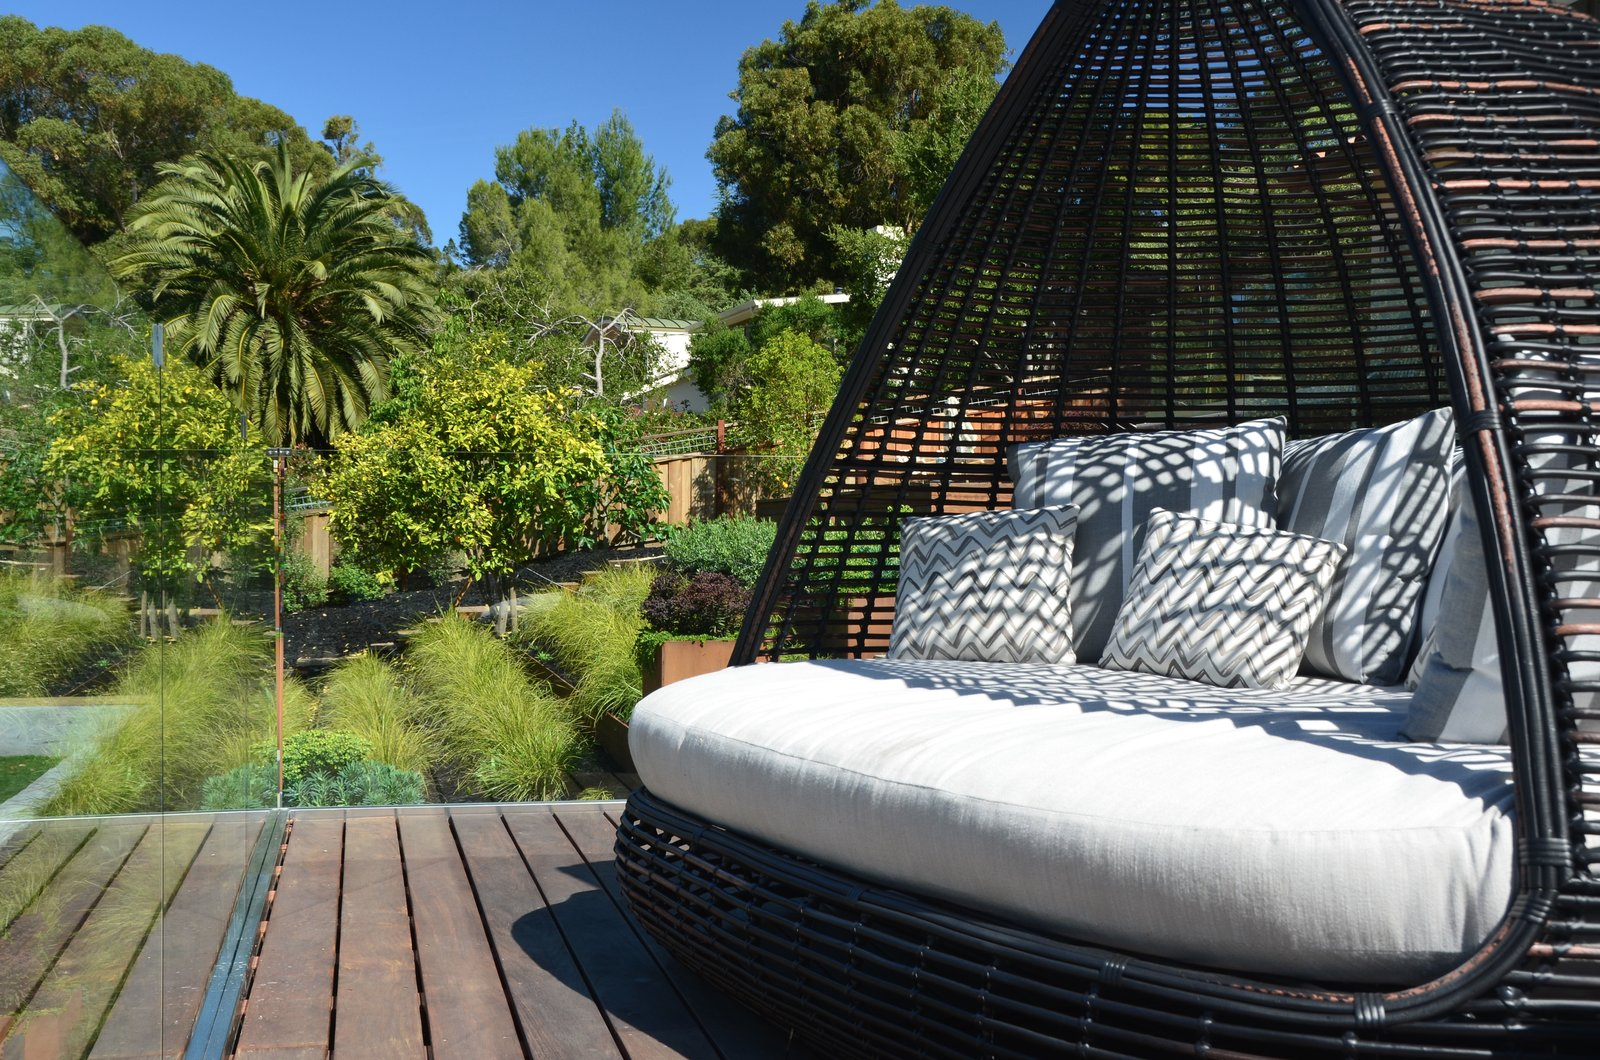 Deck Lounge Daybed  Los Altos Hills Landscape by Greenblott Design